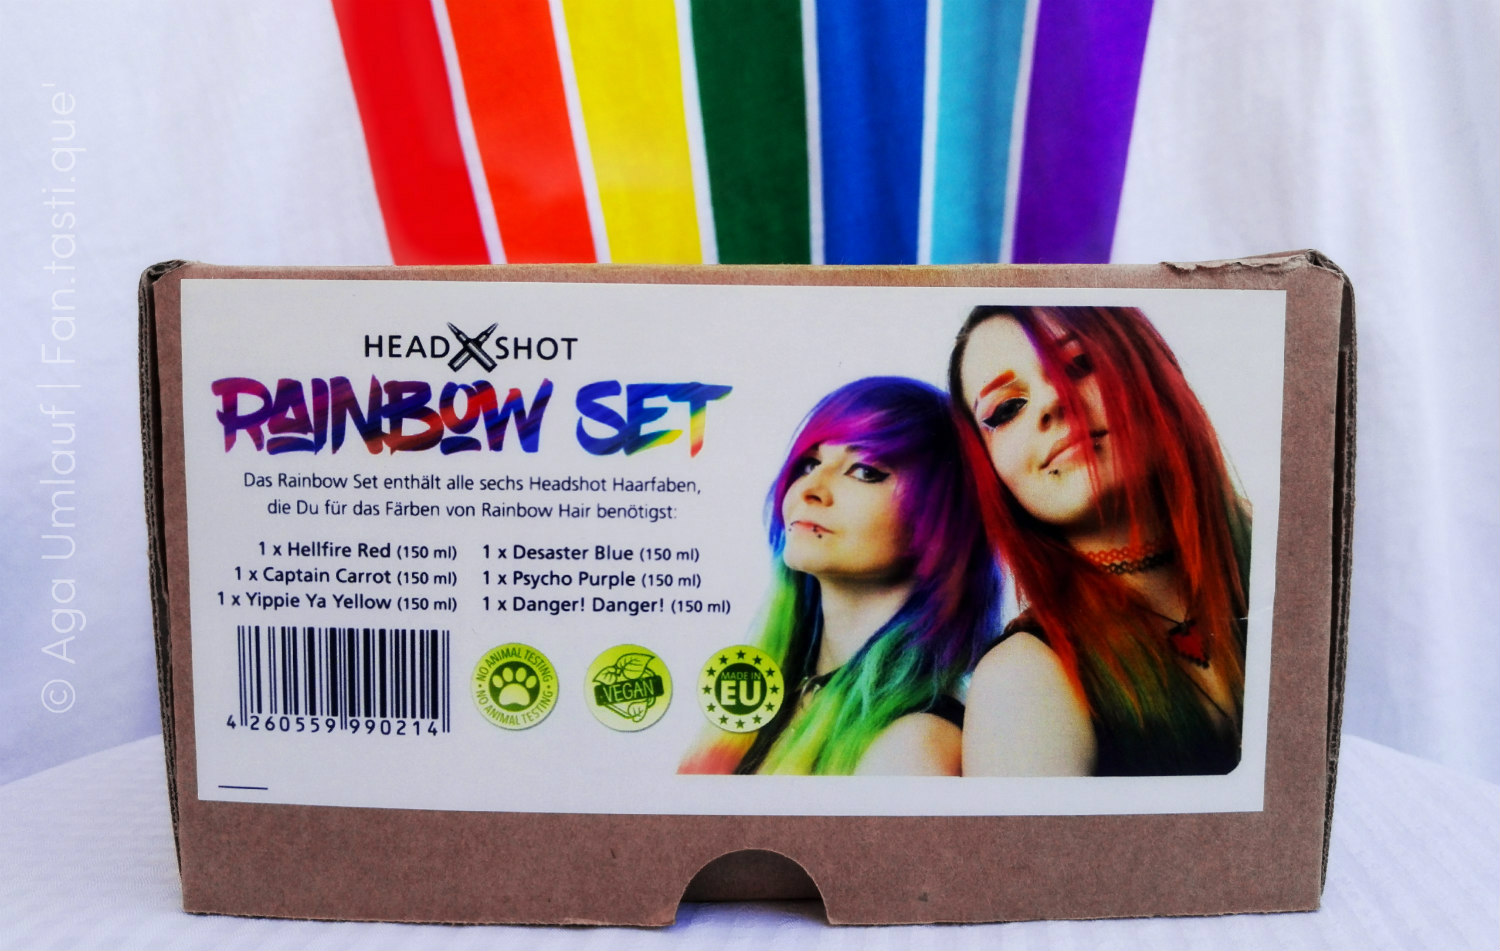 the packaging of the Headshot Rainbow Set in front of a vertical rainbow painting